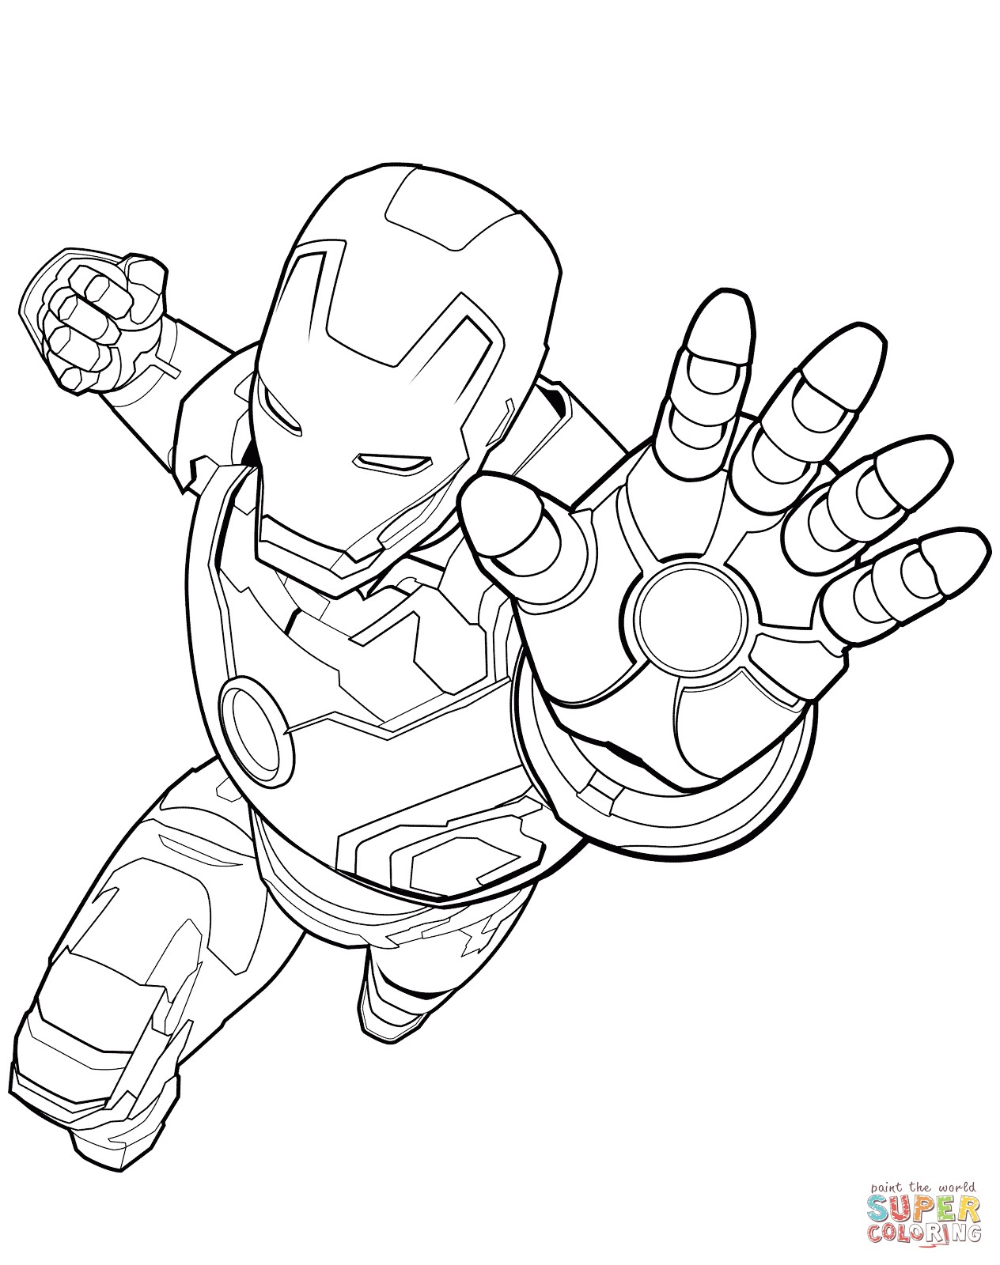 Iron Man Outline Drawing At Paintingvalley Com Explore Collection Of Iron Man Outline Draw Avengers Coloring Pages Superhero Coloring Pages Avengers Coloring